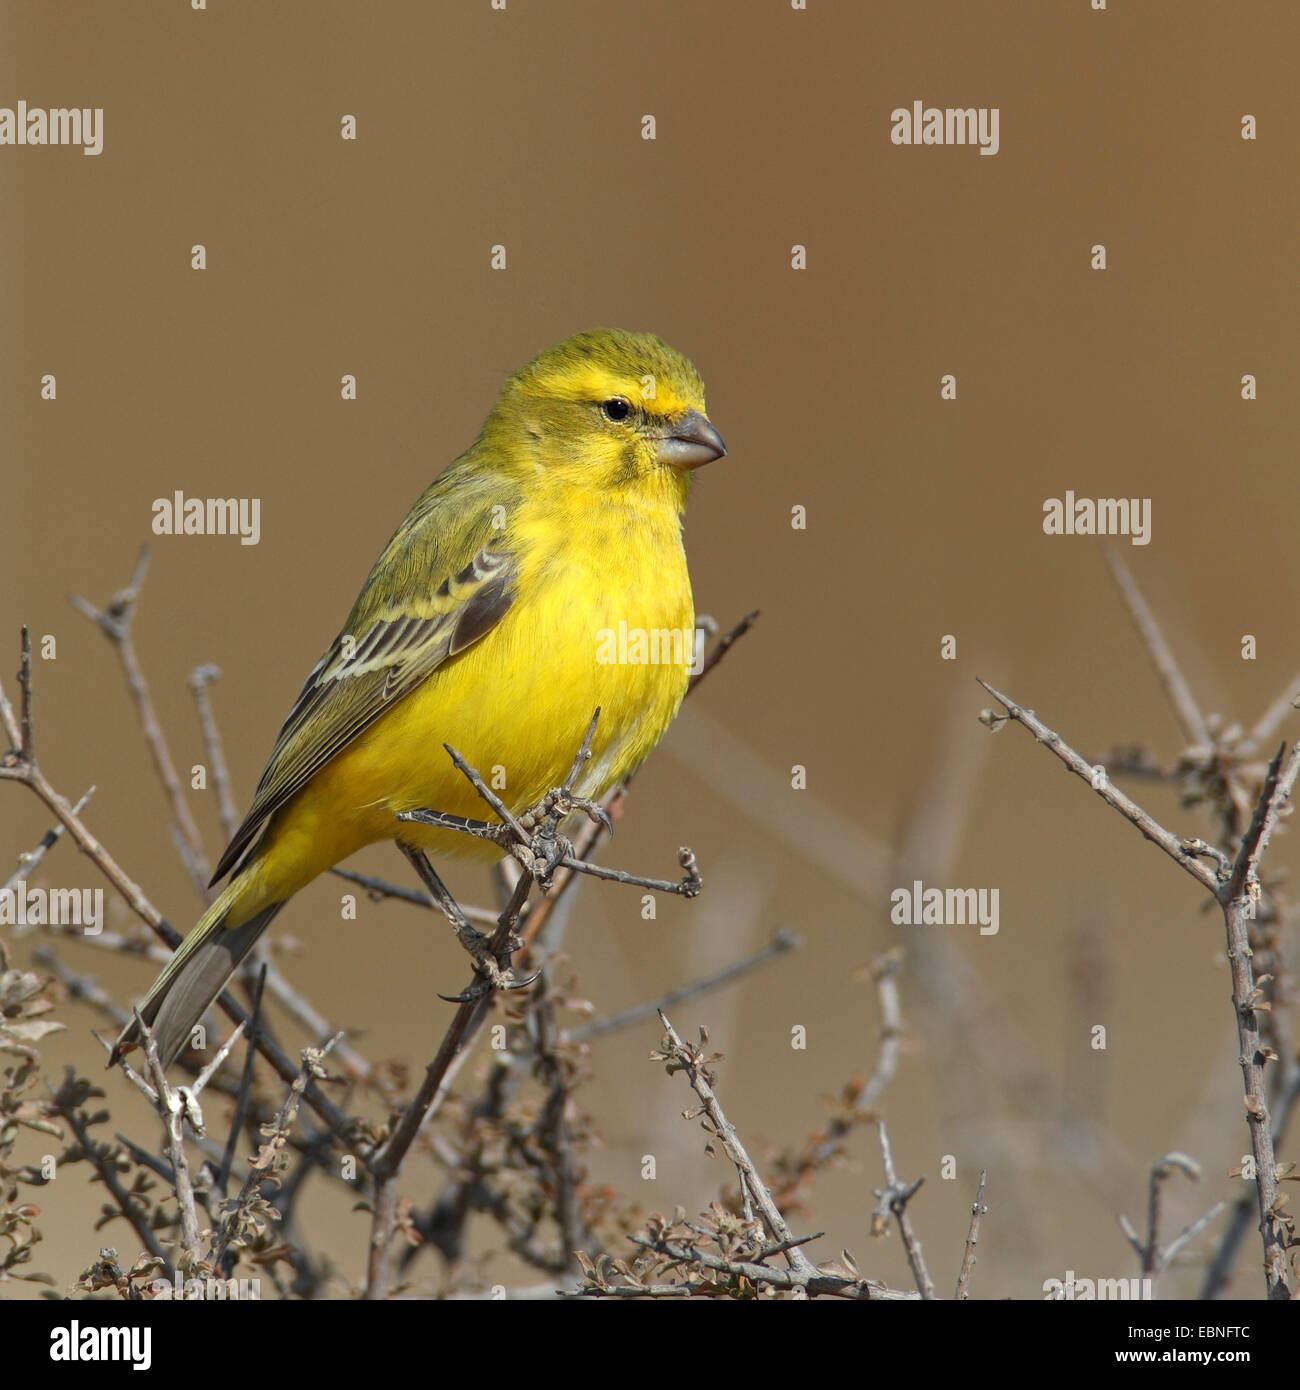 Yellow canary (Serinus flaviventris), male sitting on a bush, South Africa, Kgalagadi Transfrontier National Park - Stock Image